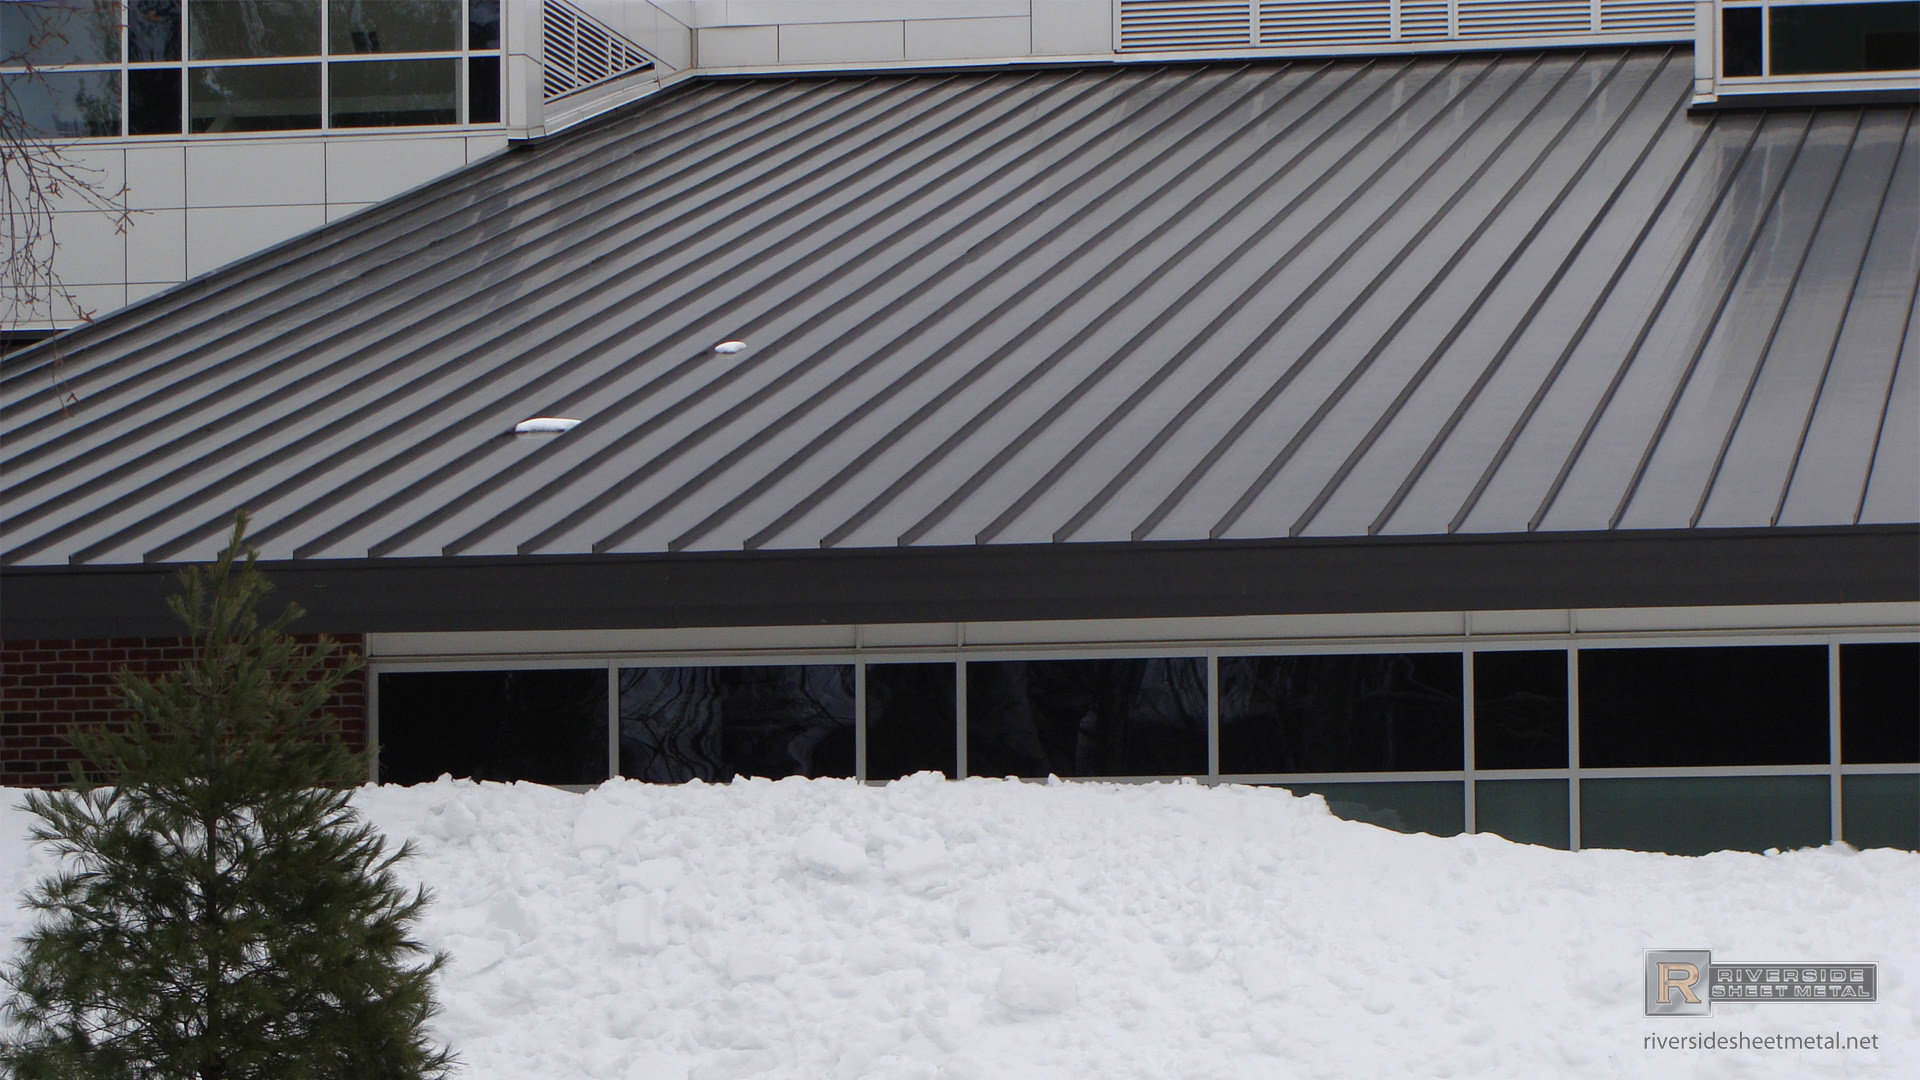 bronze aluminum roof without snow on